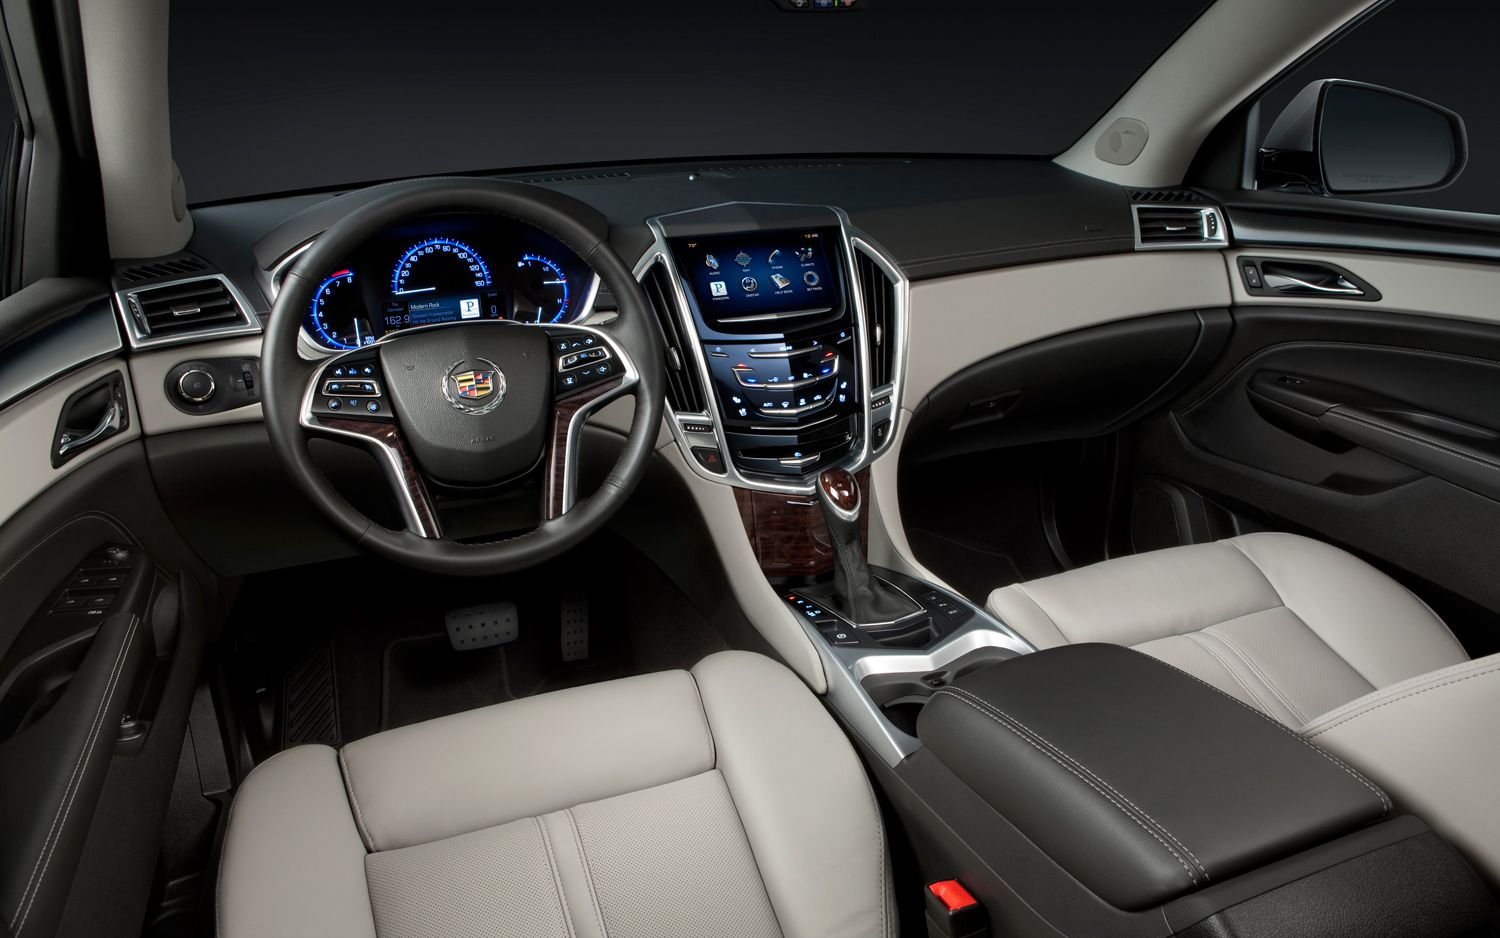 cadillac srx ii 2013 pictures #8